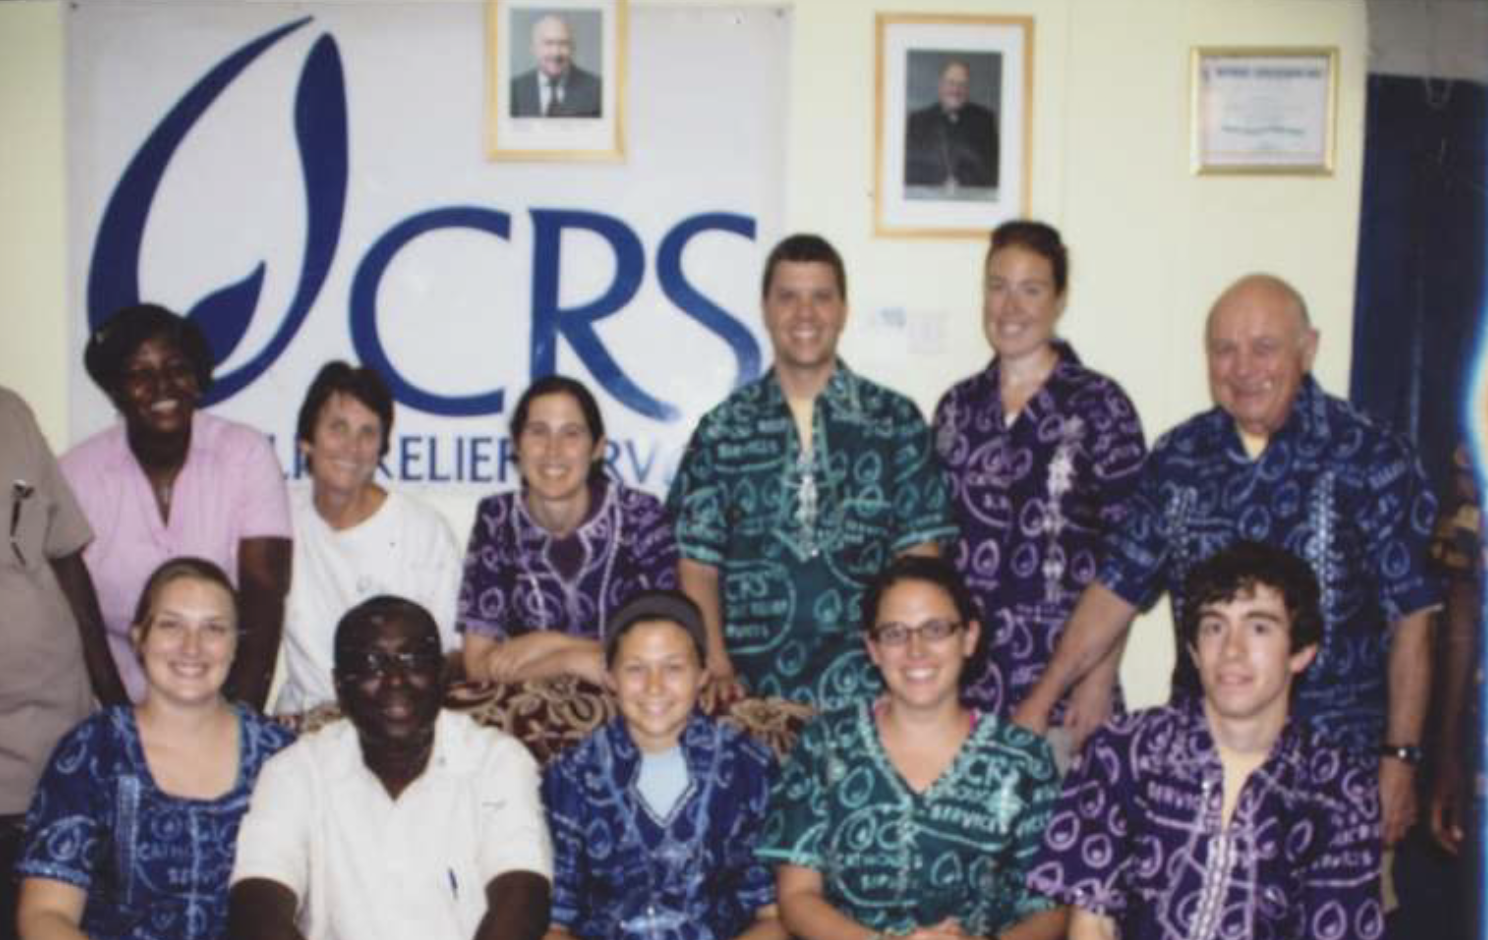 2010 - Back Row: Jan Kline**, Jen Valdez, Bob Maher**, Jen Reubish Danielson, Dave MeyersBottom Row: Courtney Plummer – Intern, Dr Philip Darko, PhD, Blair Howisey, Hallie Hemmingsen-Pratt, Chris Dube*- RIP